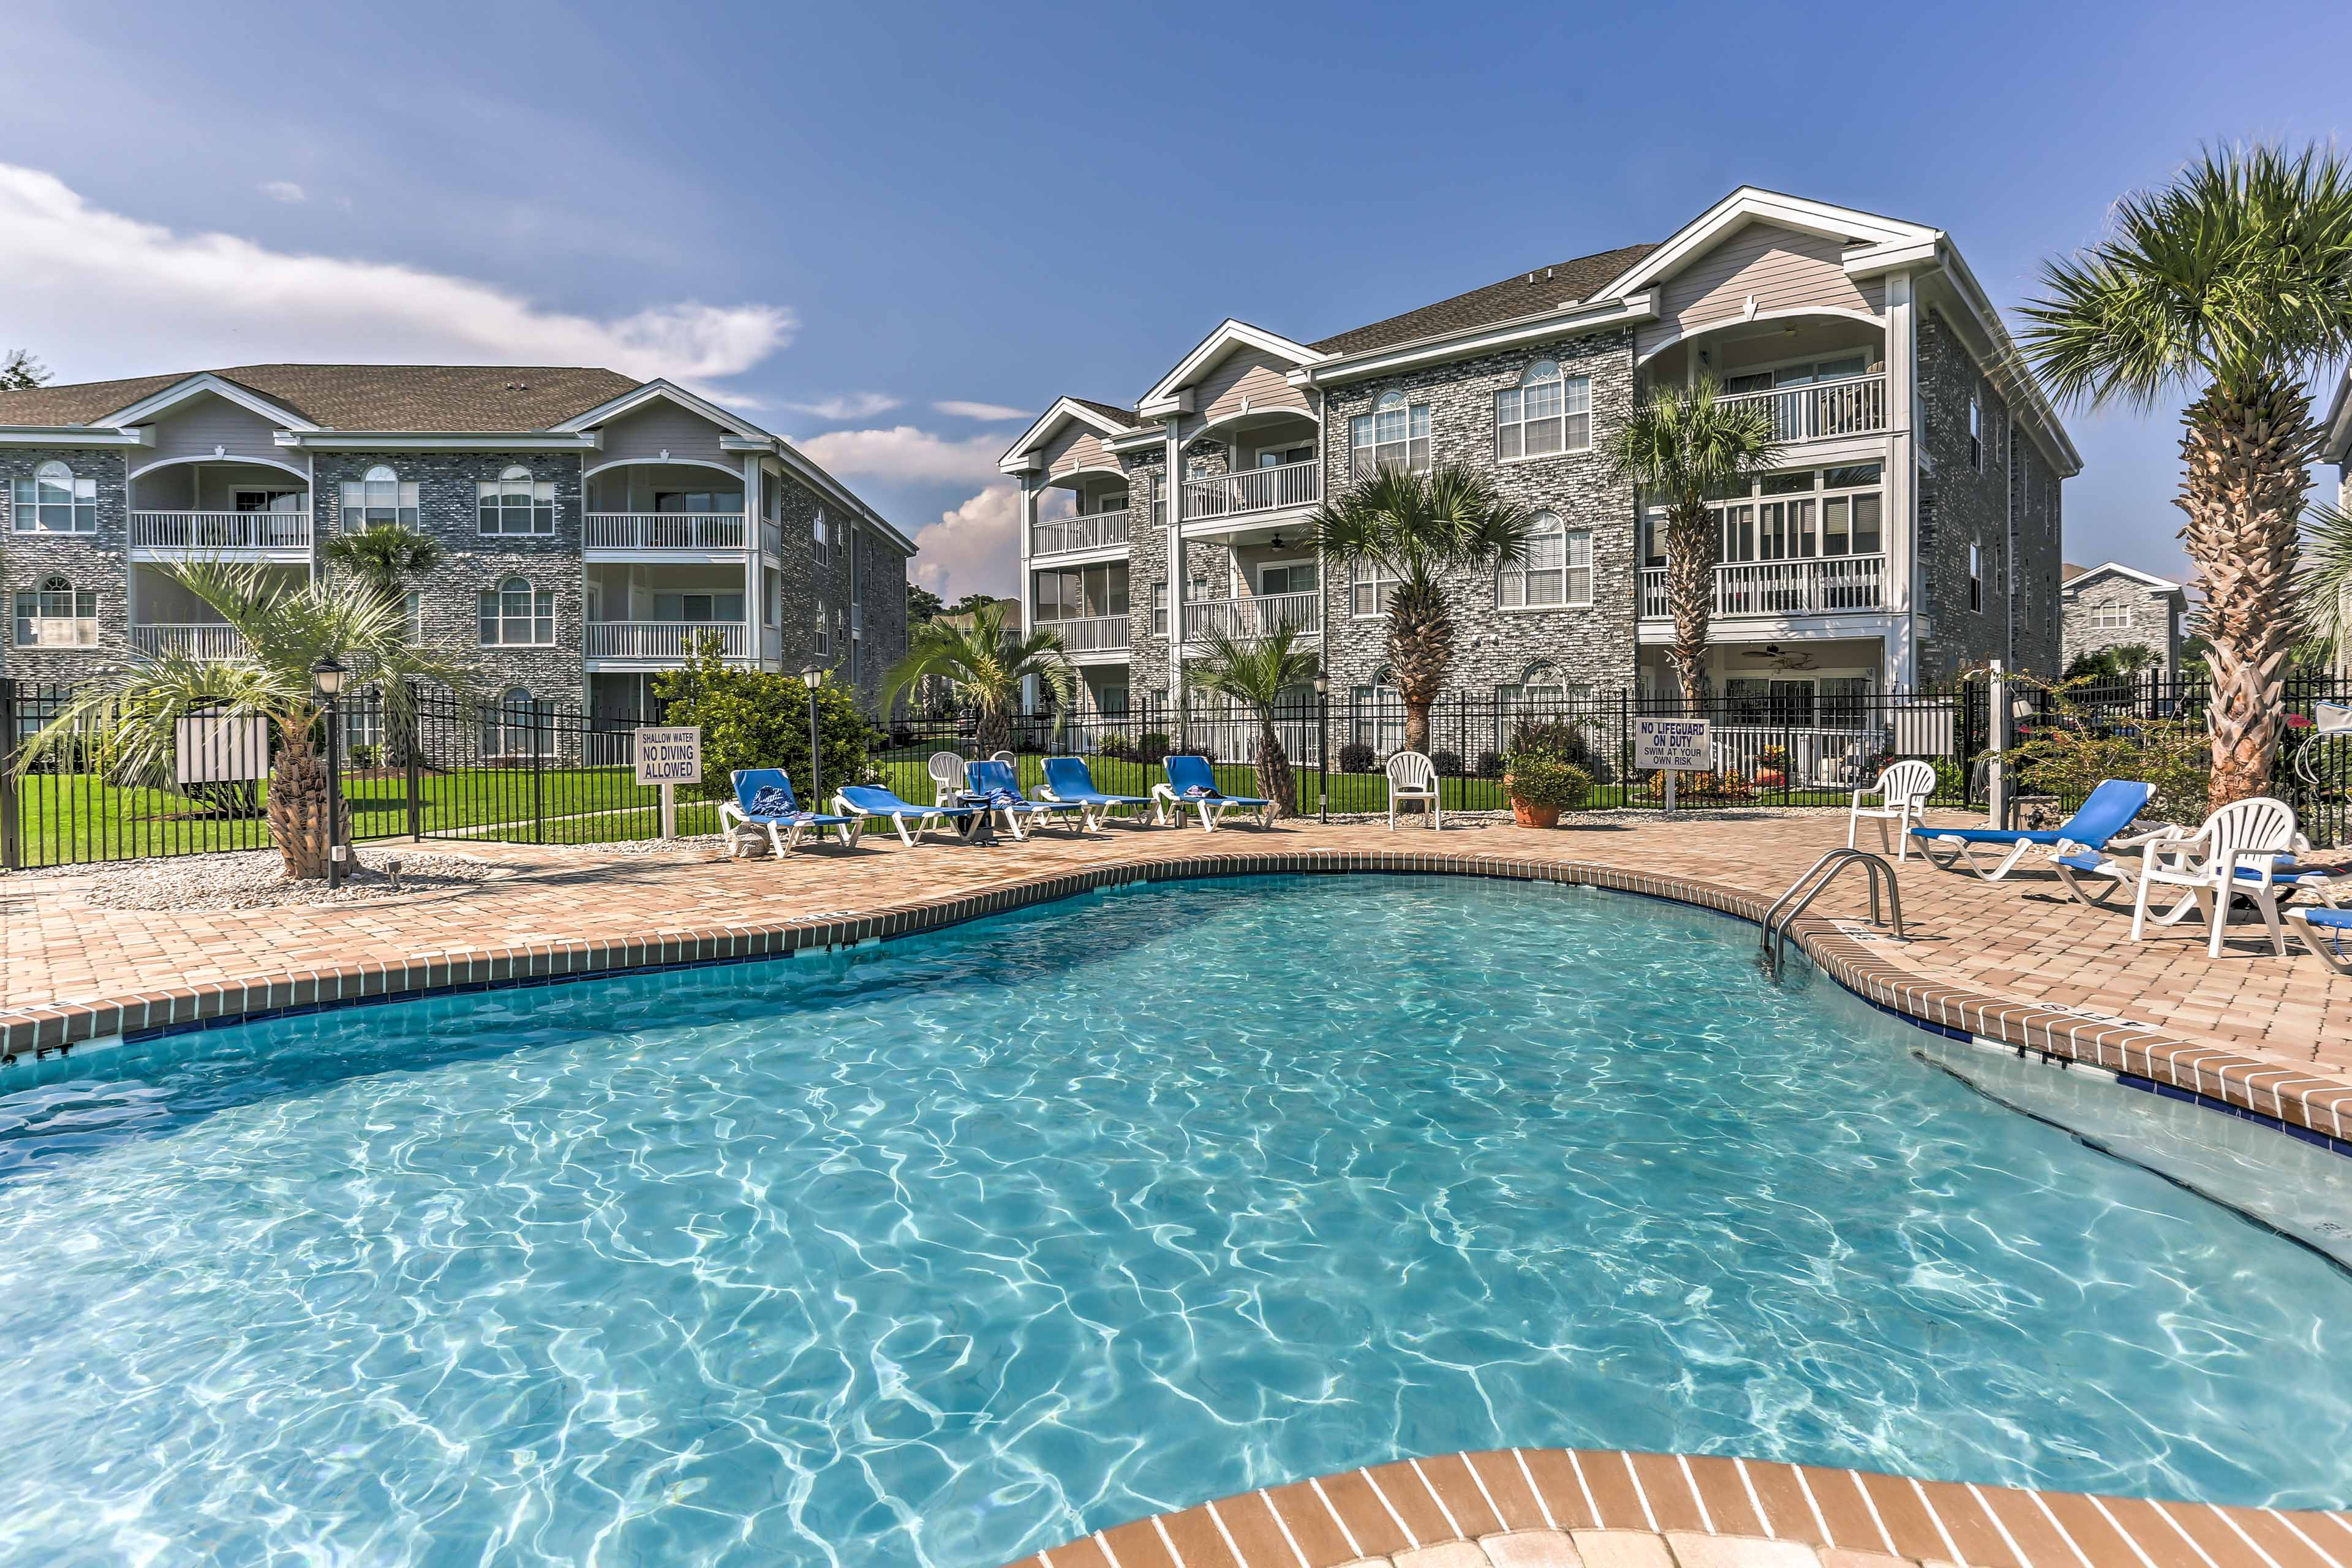 Make a splash in the on-site swimming pool!